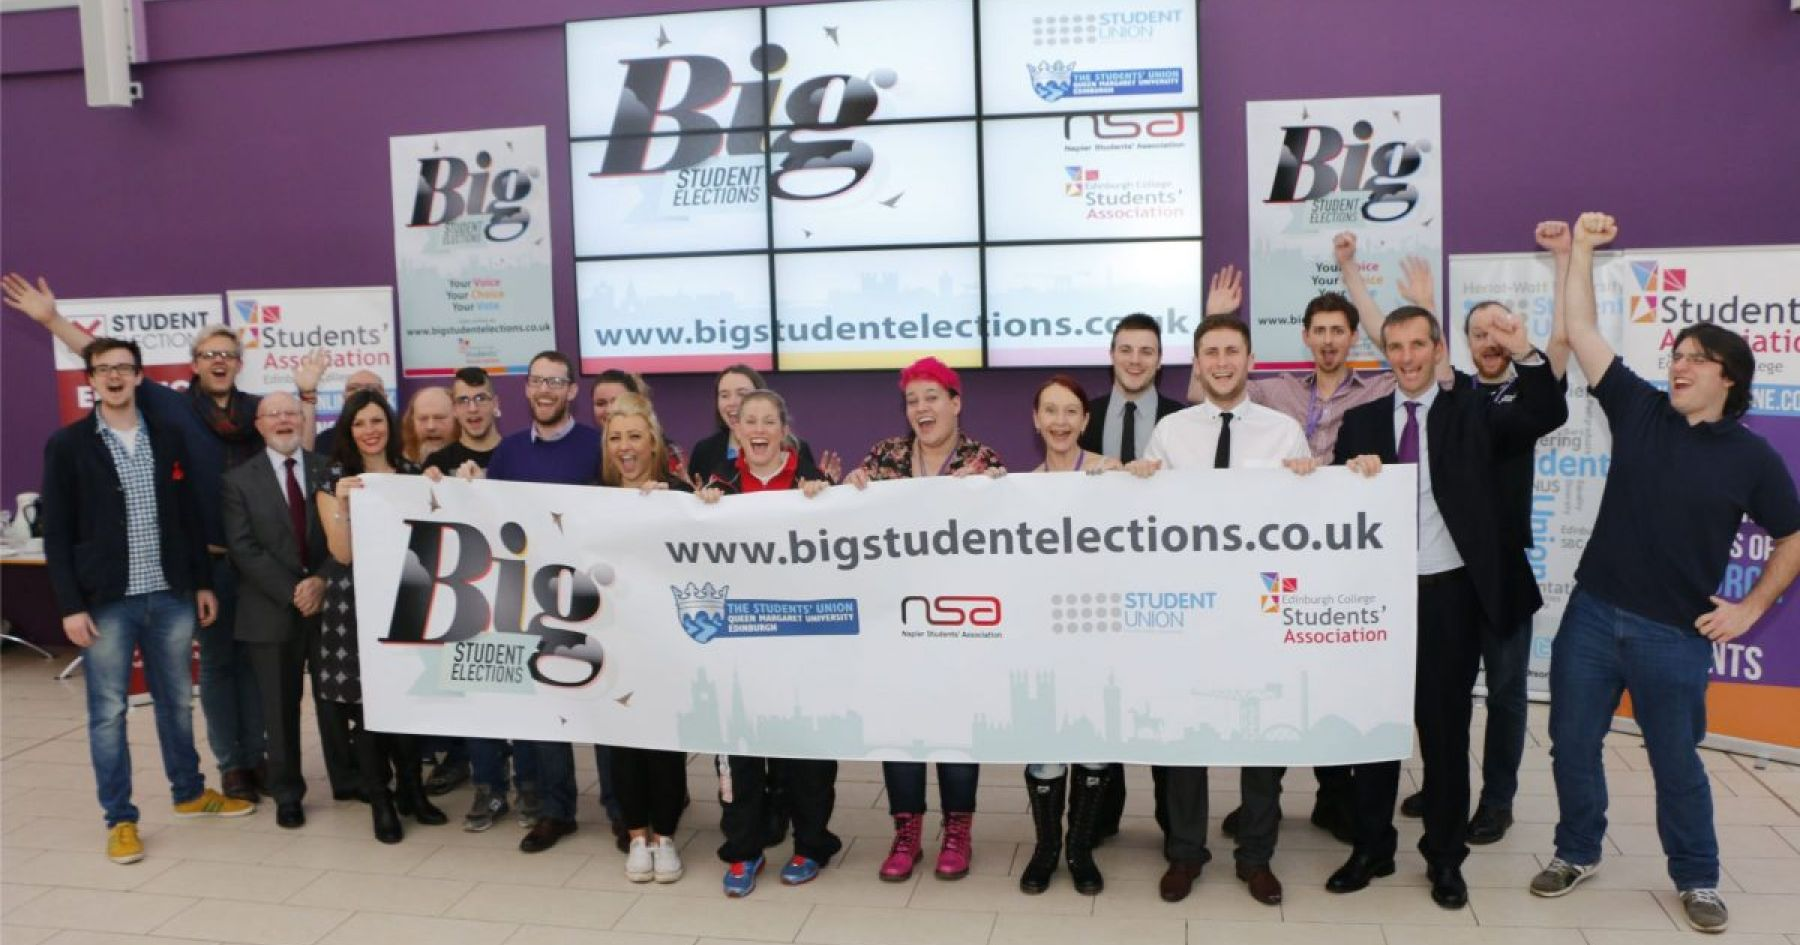 Launch of the Big Student Elections